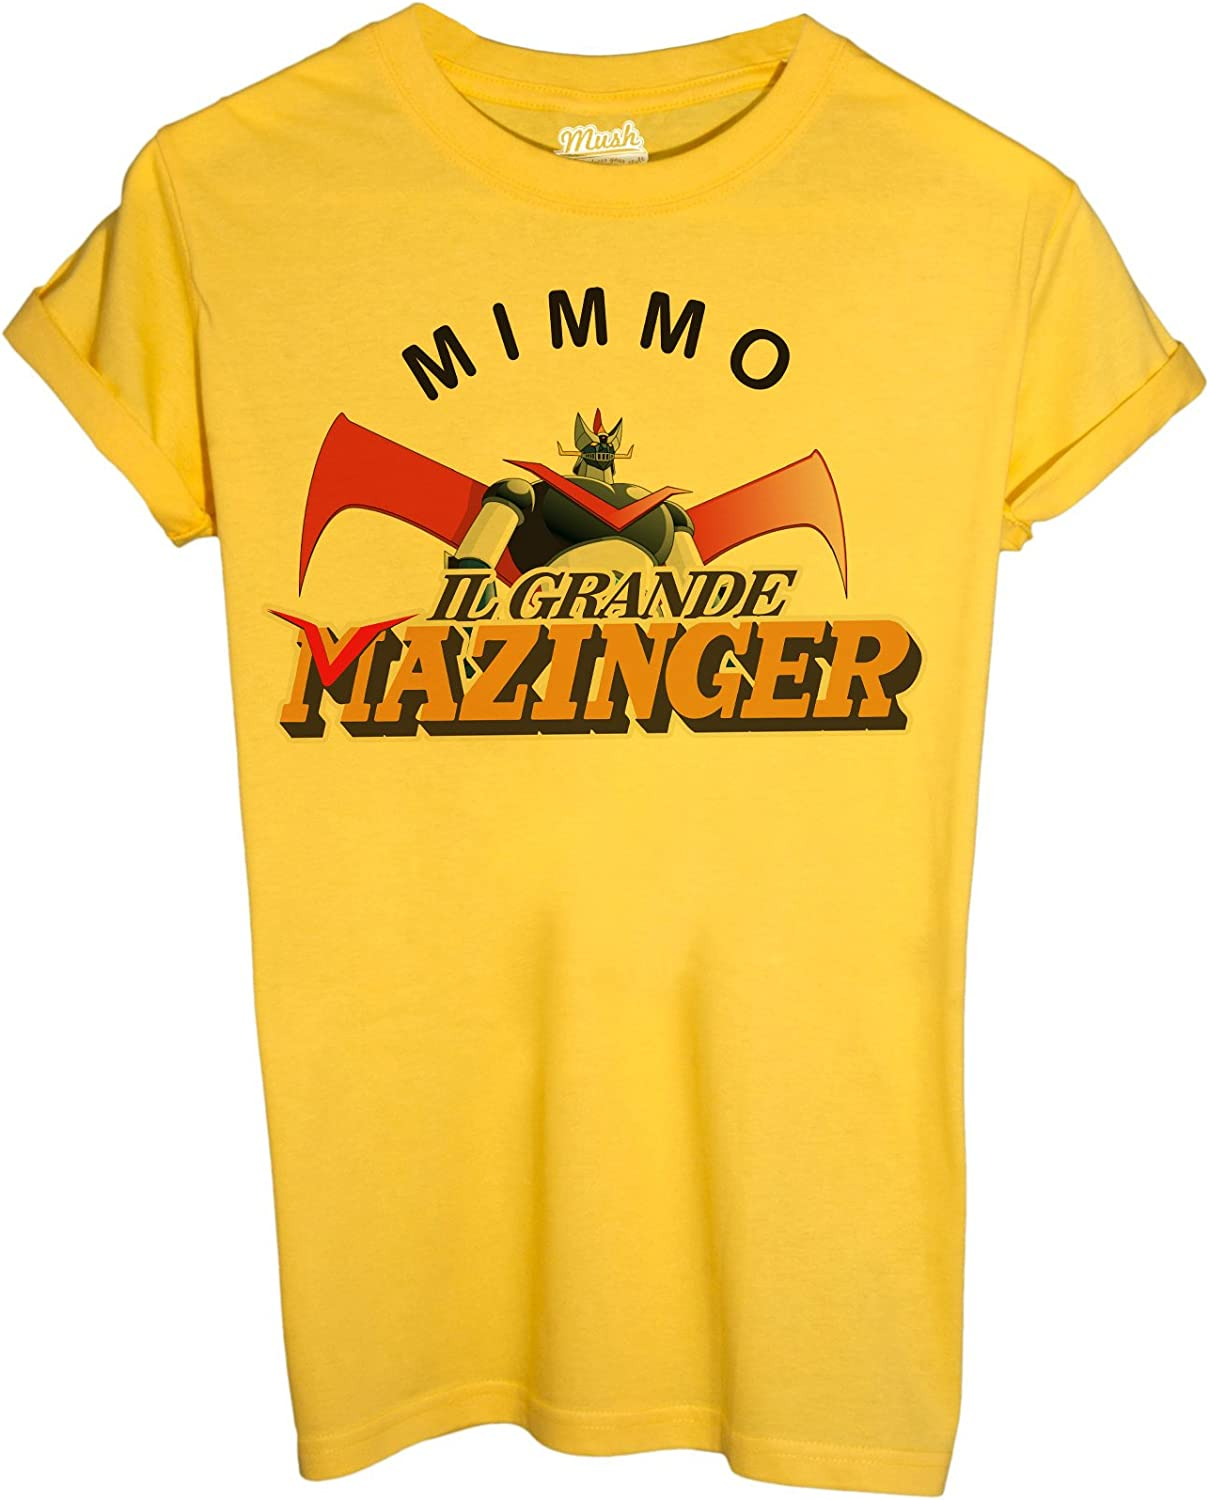 Social by Dress Your Style MUSH T-Shirt MIMMO Verdone T-Shirt Mazinger